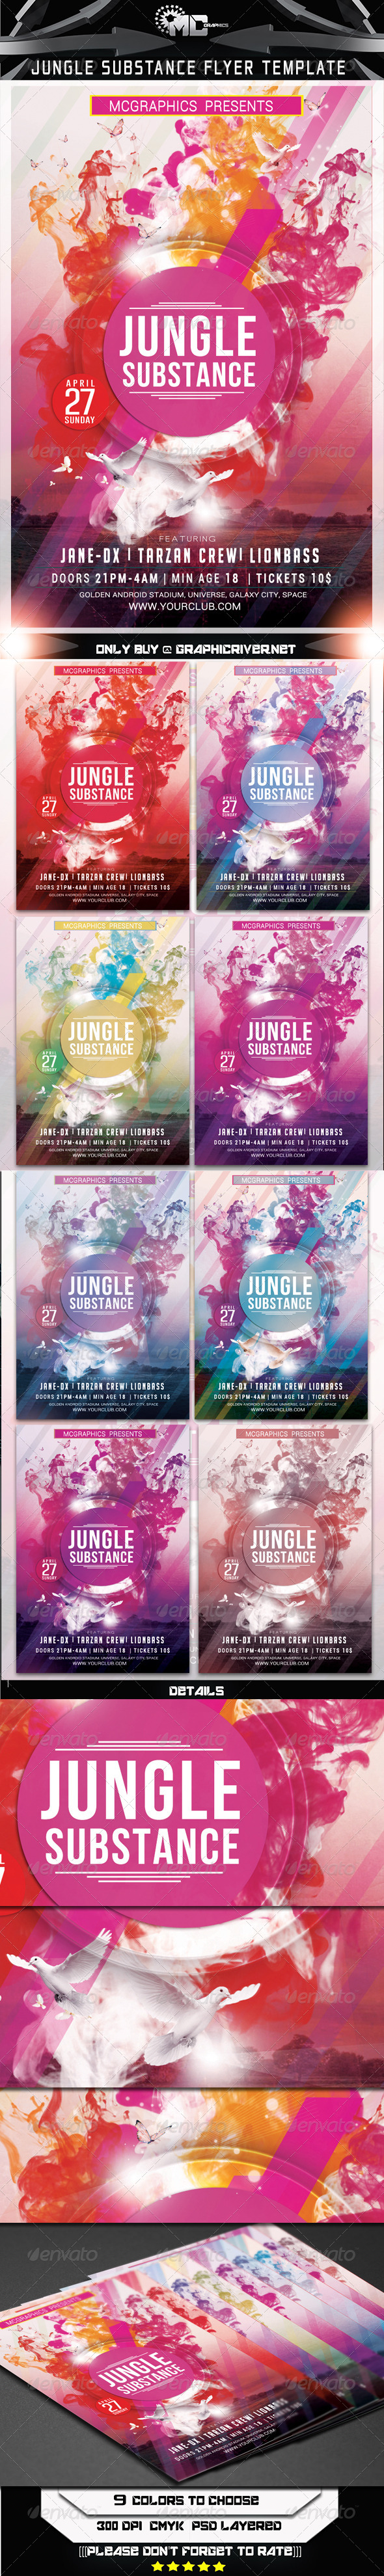 GraphicRiver Jungle Substance Flyer Template 7333832